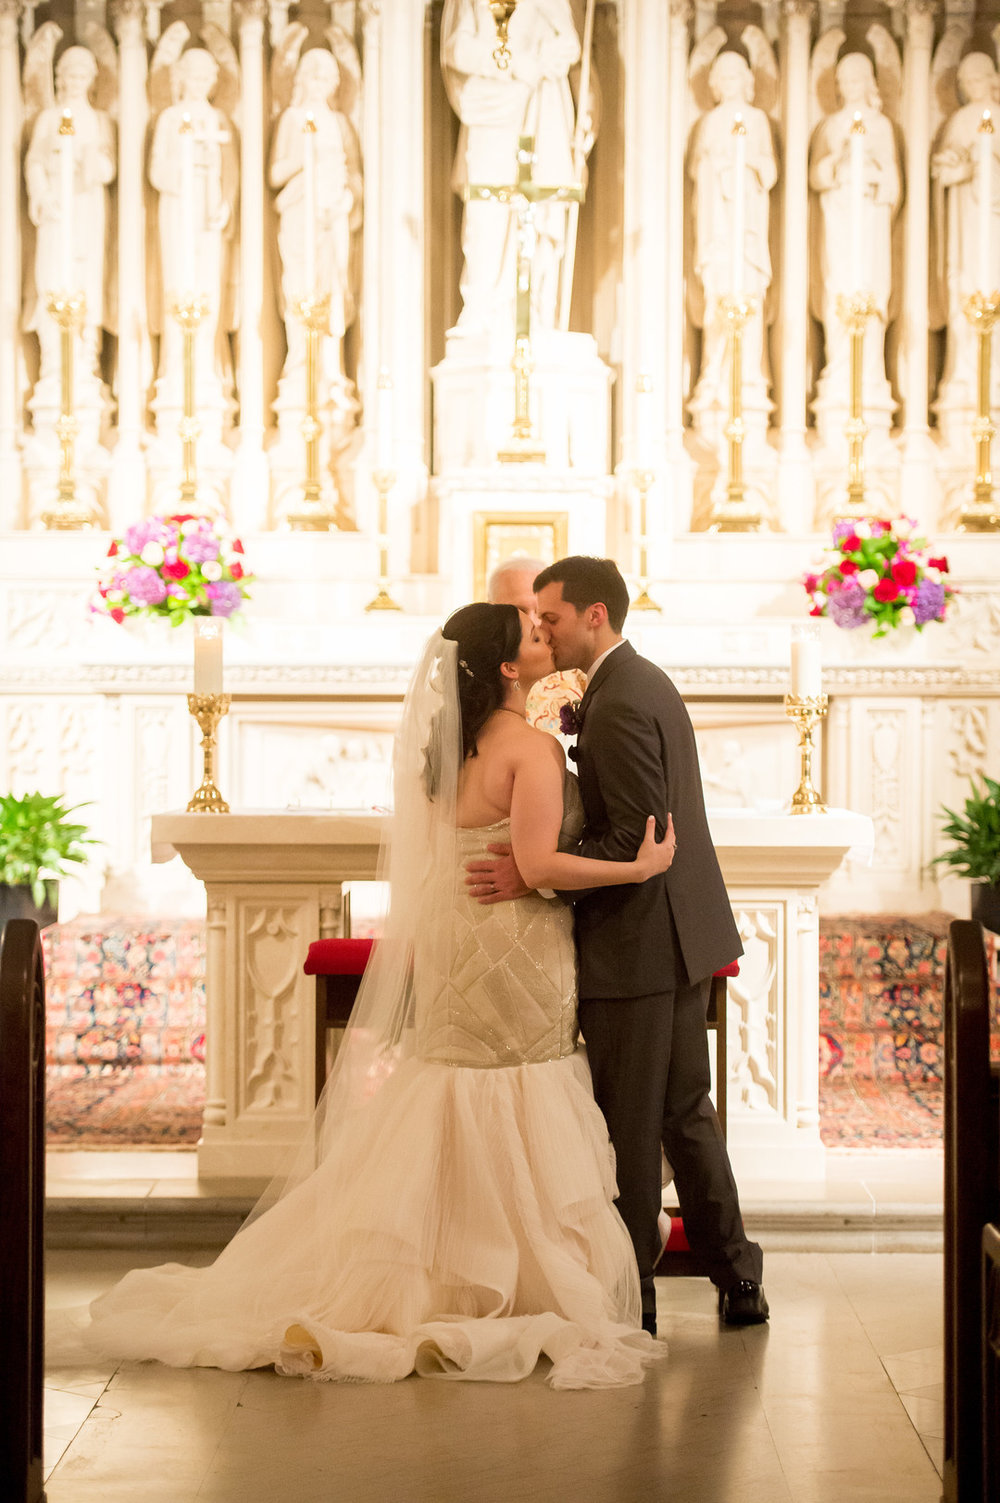 First Kiss Chicago Wedding Ceremony St. James Chapel Julia Franzosa Photography